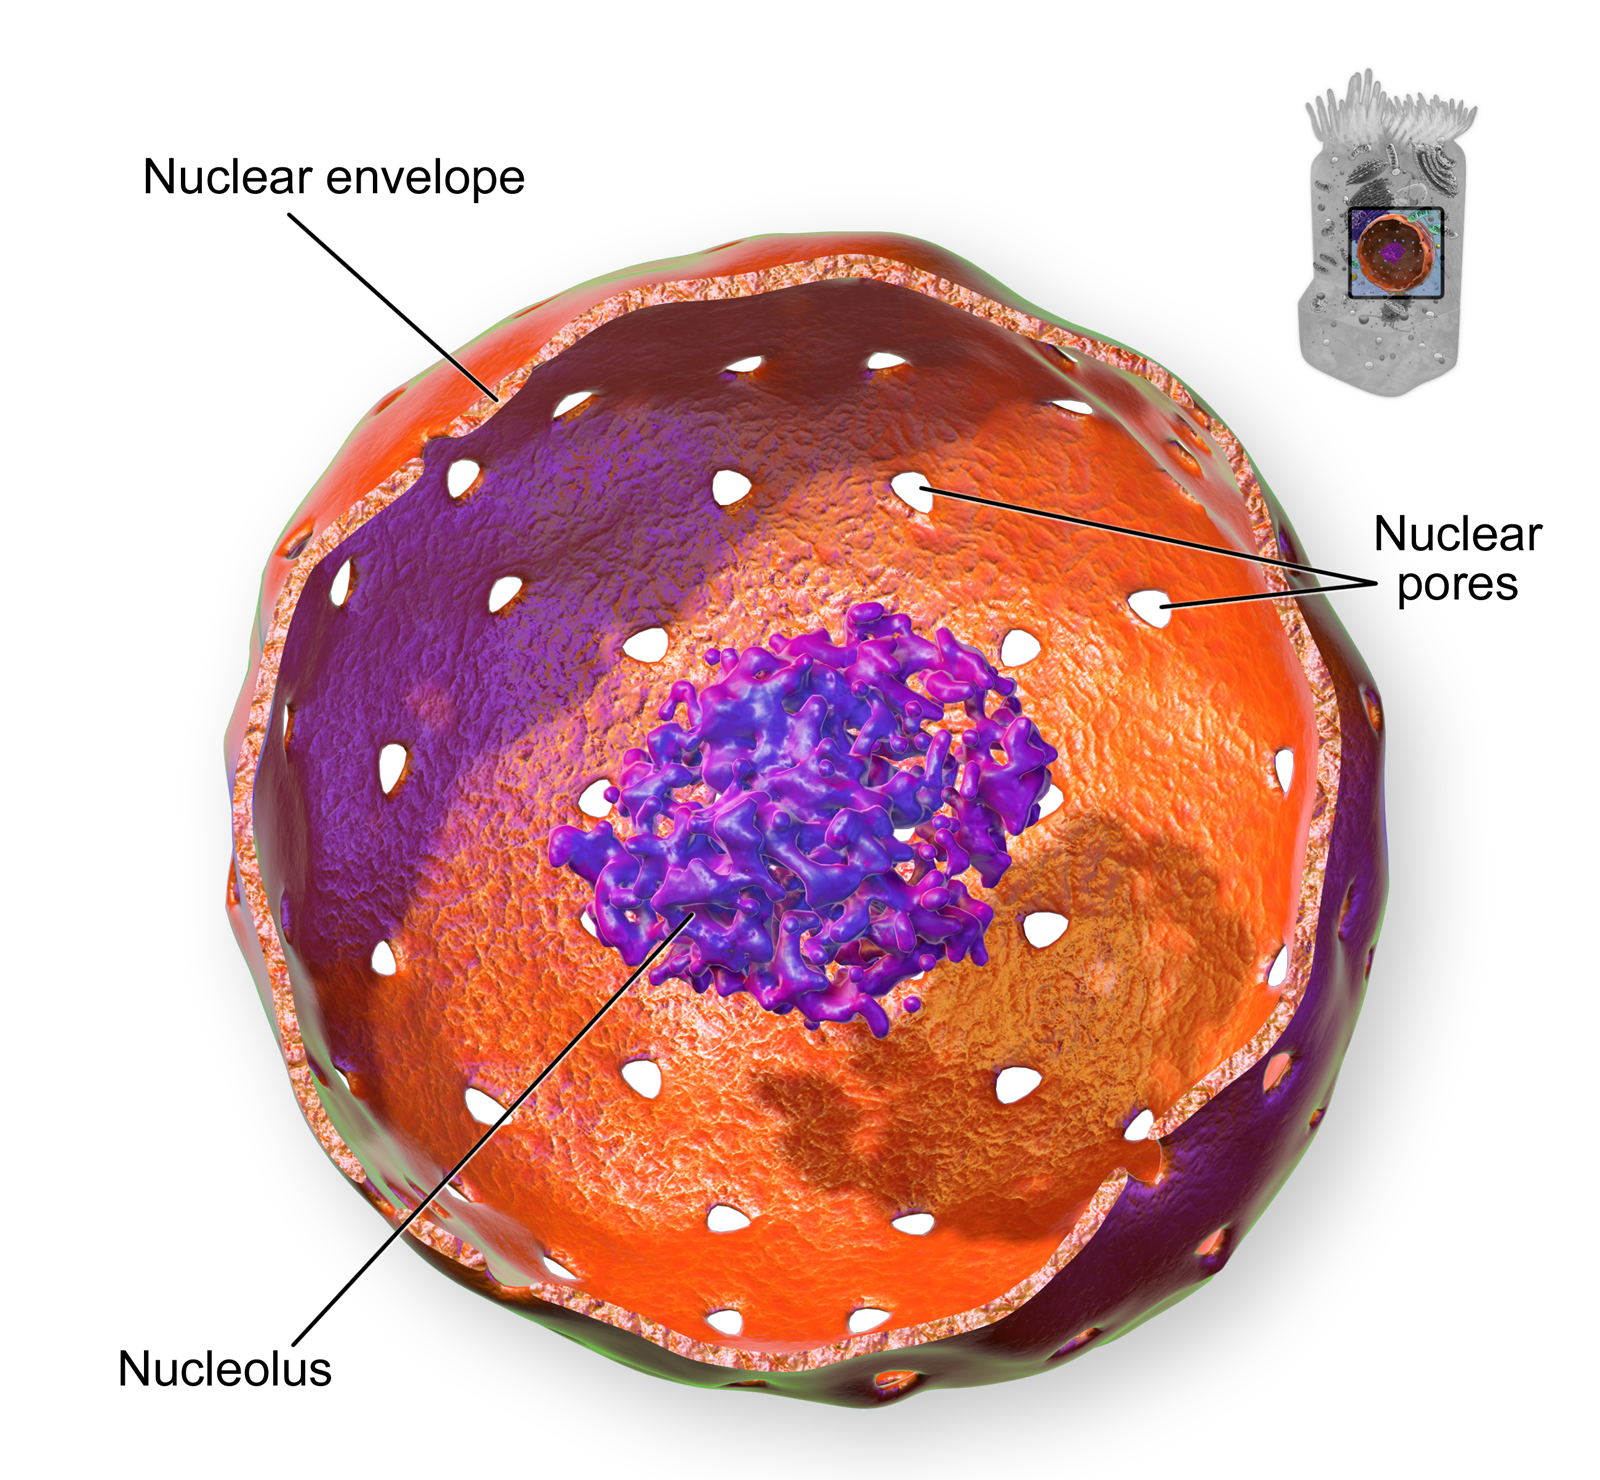 This closeup of a cell nucleus shows that it is surrounded by a structure called the nuclear envelope, which contains tiny perforations, or pores. The nucleus also contains a dense center called the nucleolus.